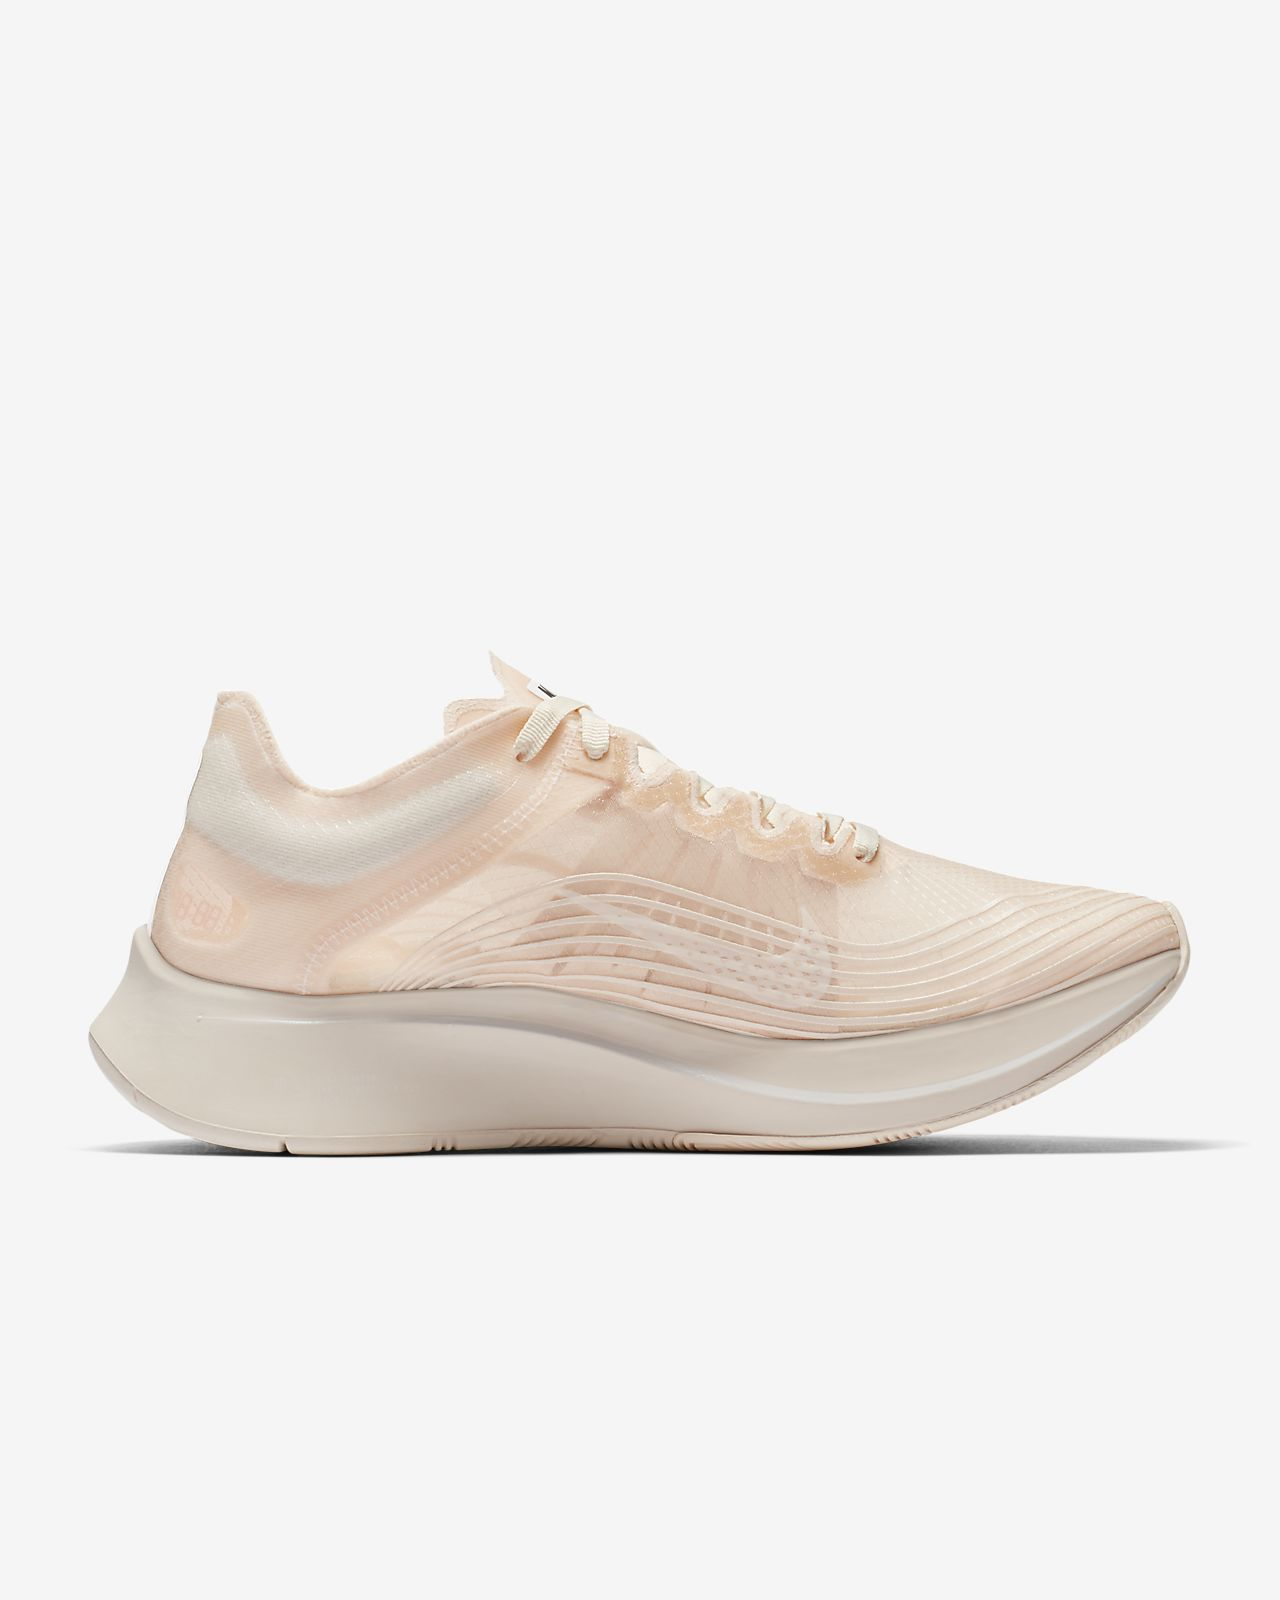 pretty nice 868b1 e9f51 ... Chaussure de running Nike Zoom Fly SP pour Femme